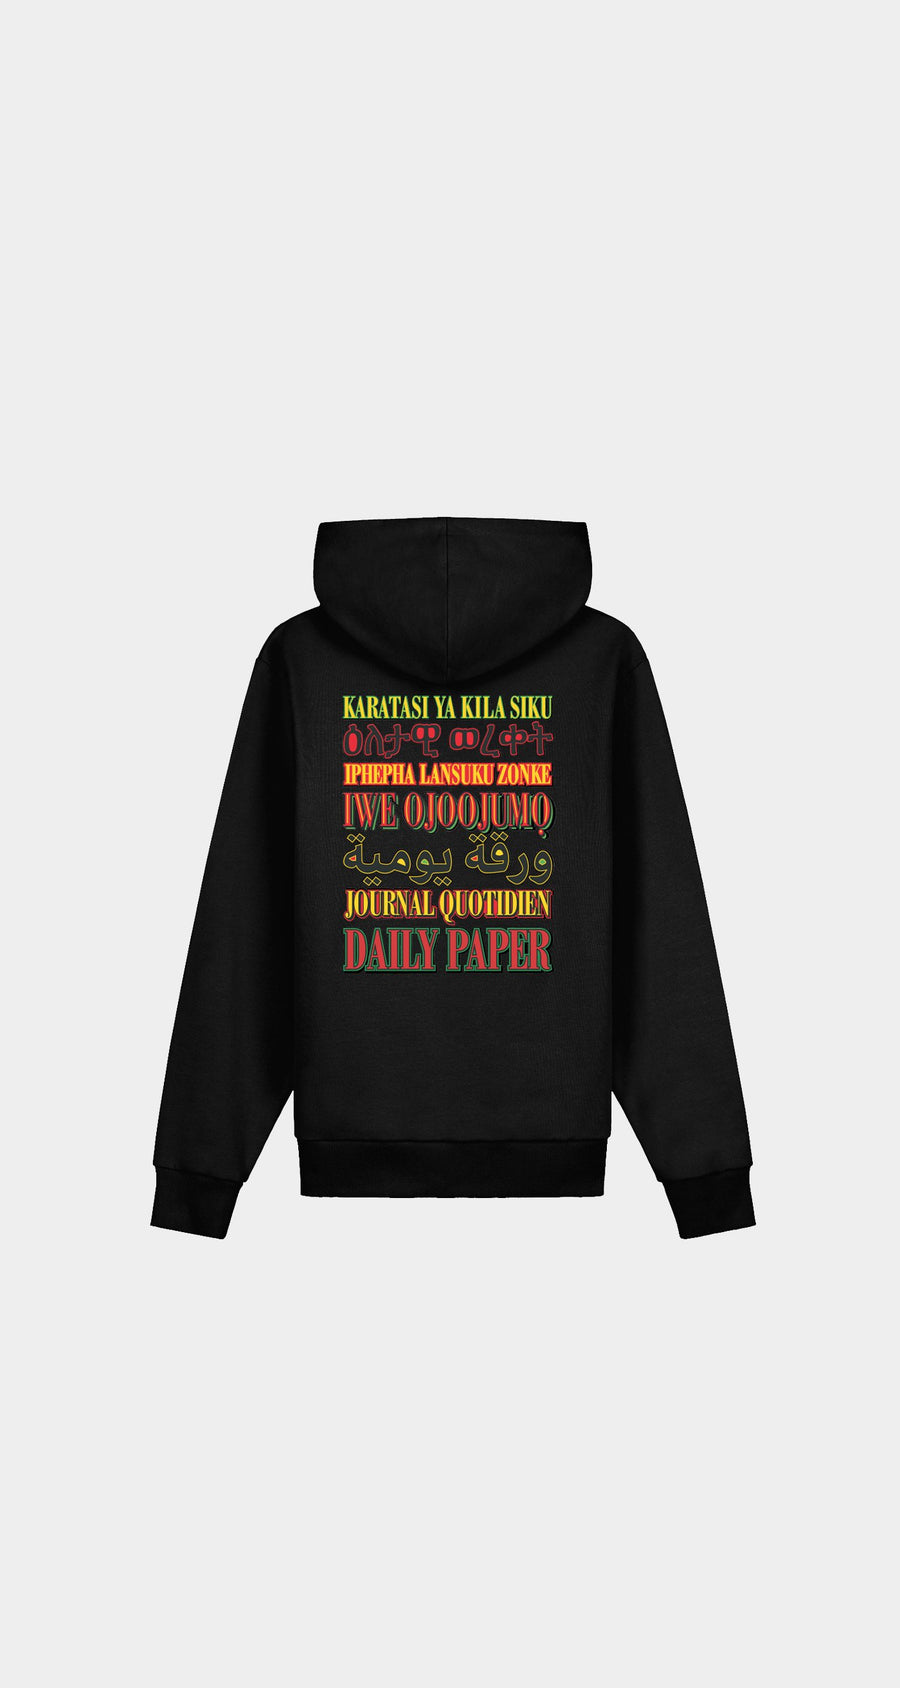 Daily Paper - Black Remulti Hoody - Women Front